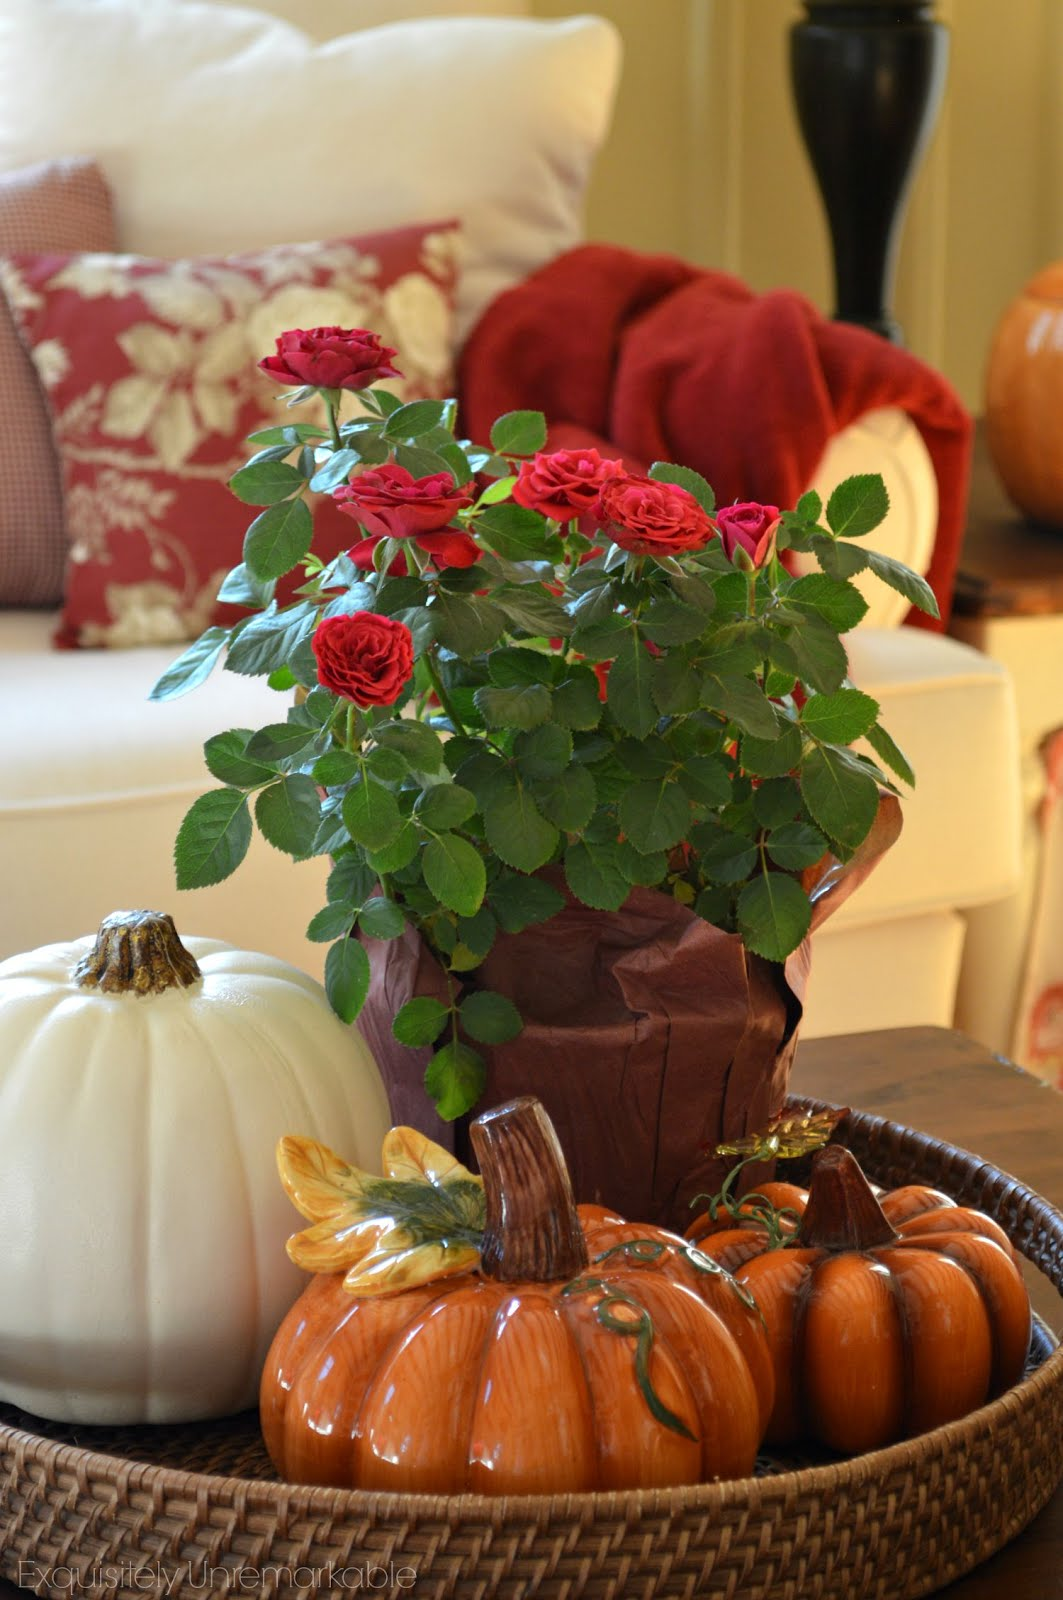 Pumpkins and red rose plant in a basket on a living coffee table